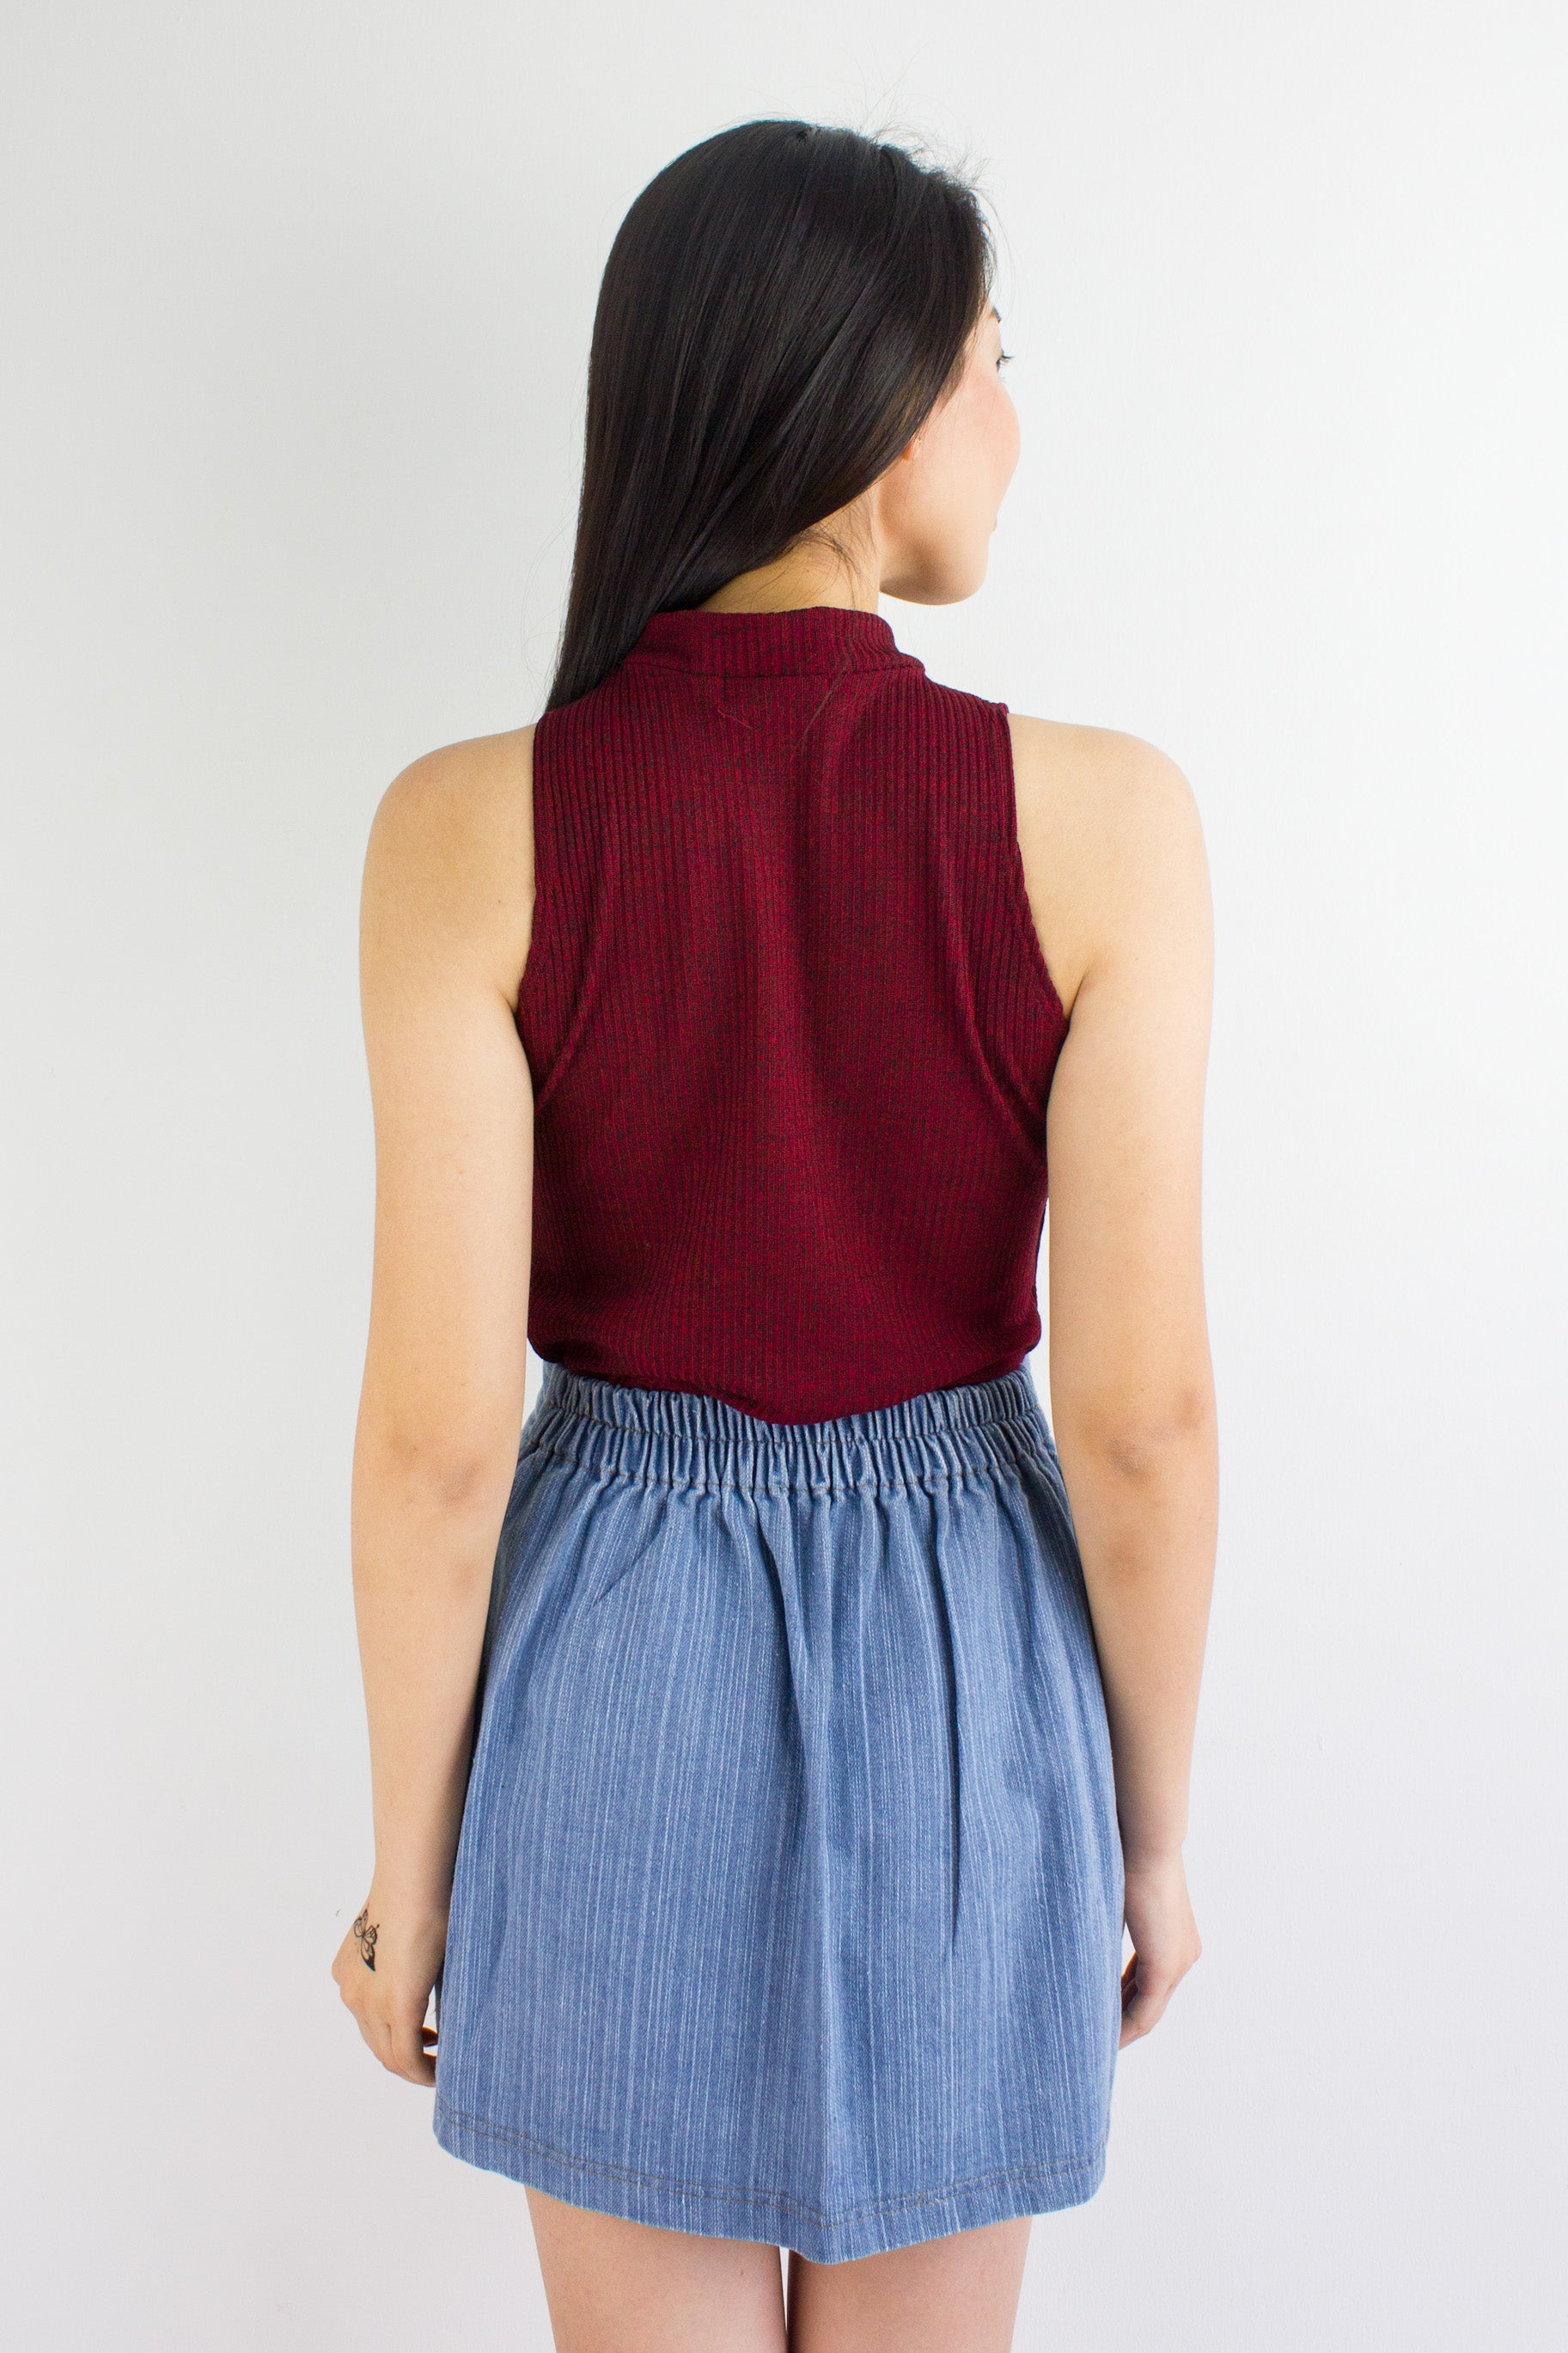 Peep Hole Top in Maroon